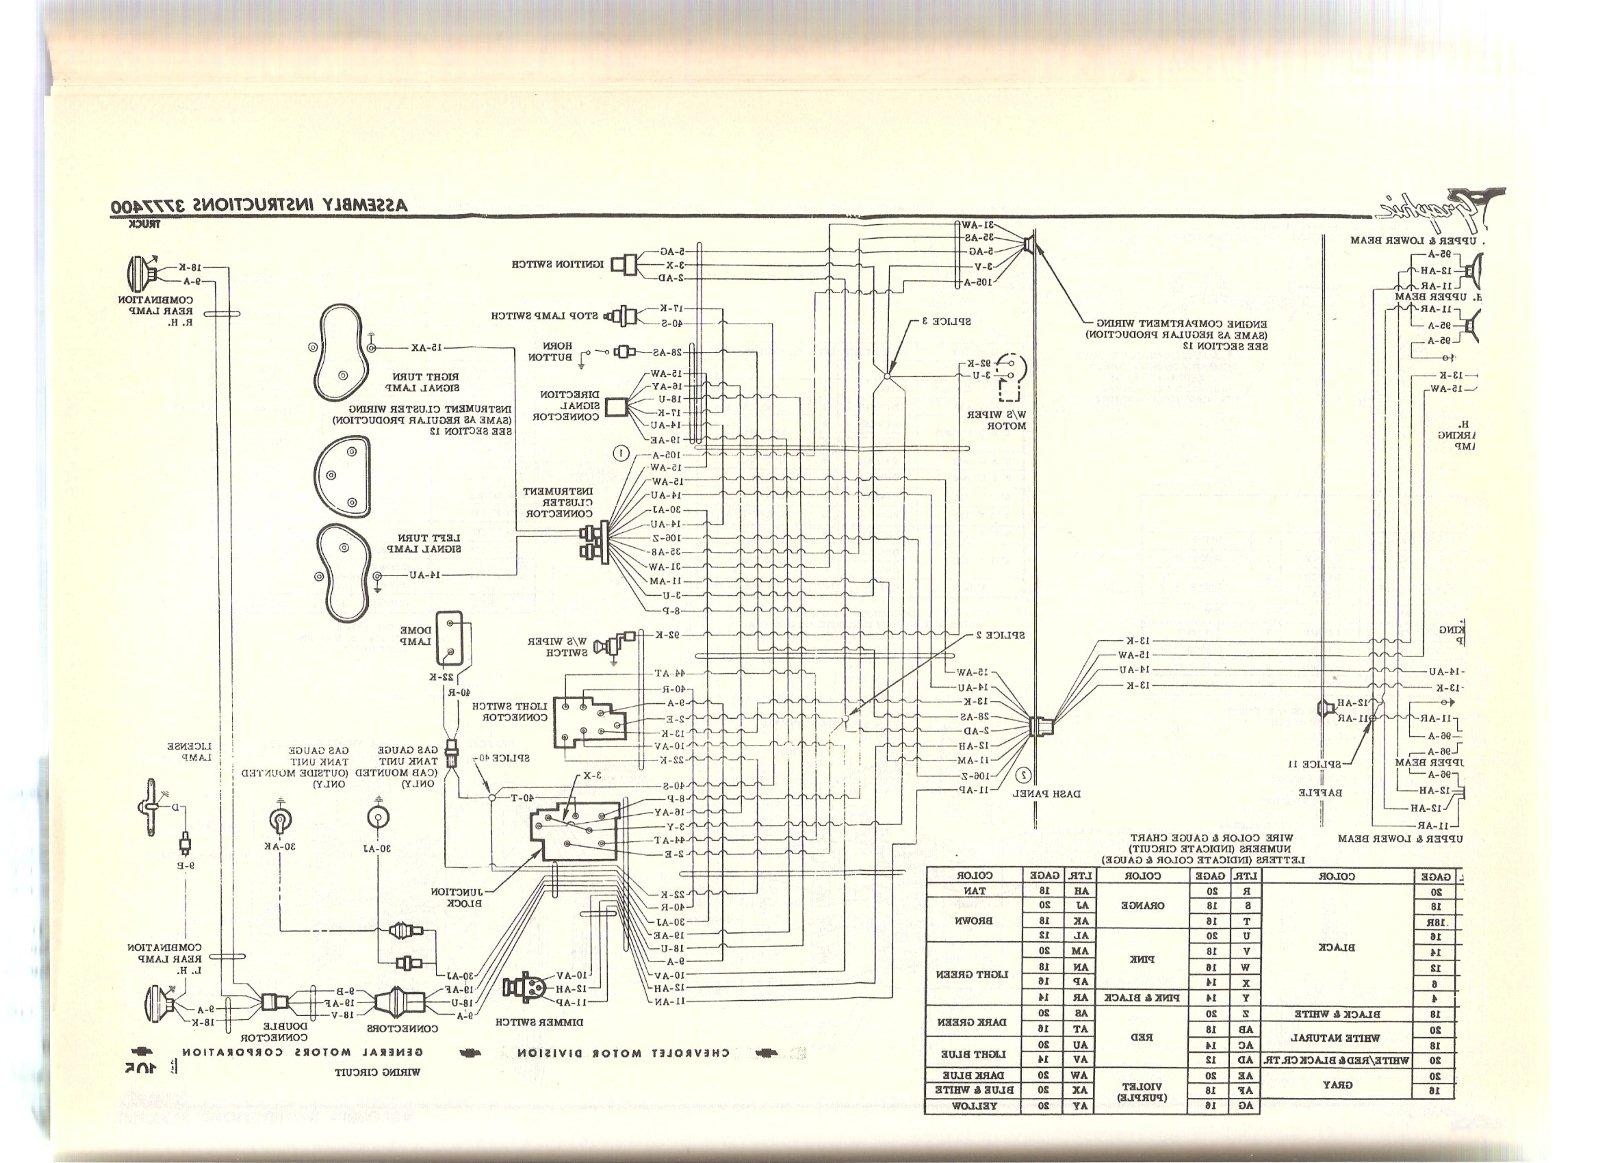 1950 Plymouth Special Wiring Diagrams Schematics Data Chrysler Diagram Buick Get Free Image About Engine